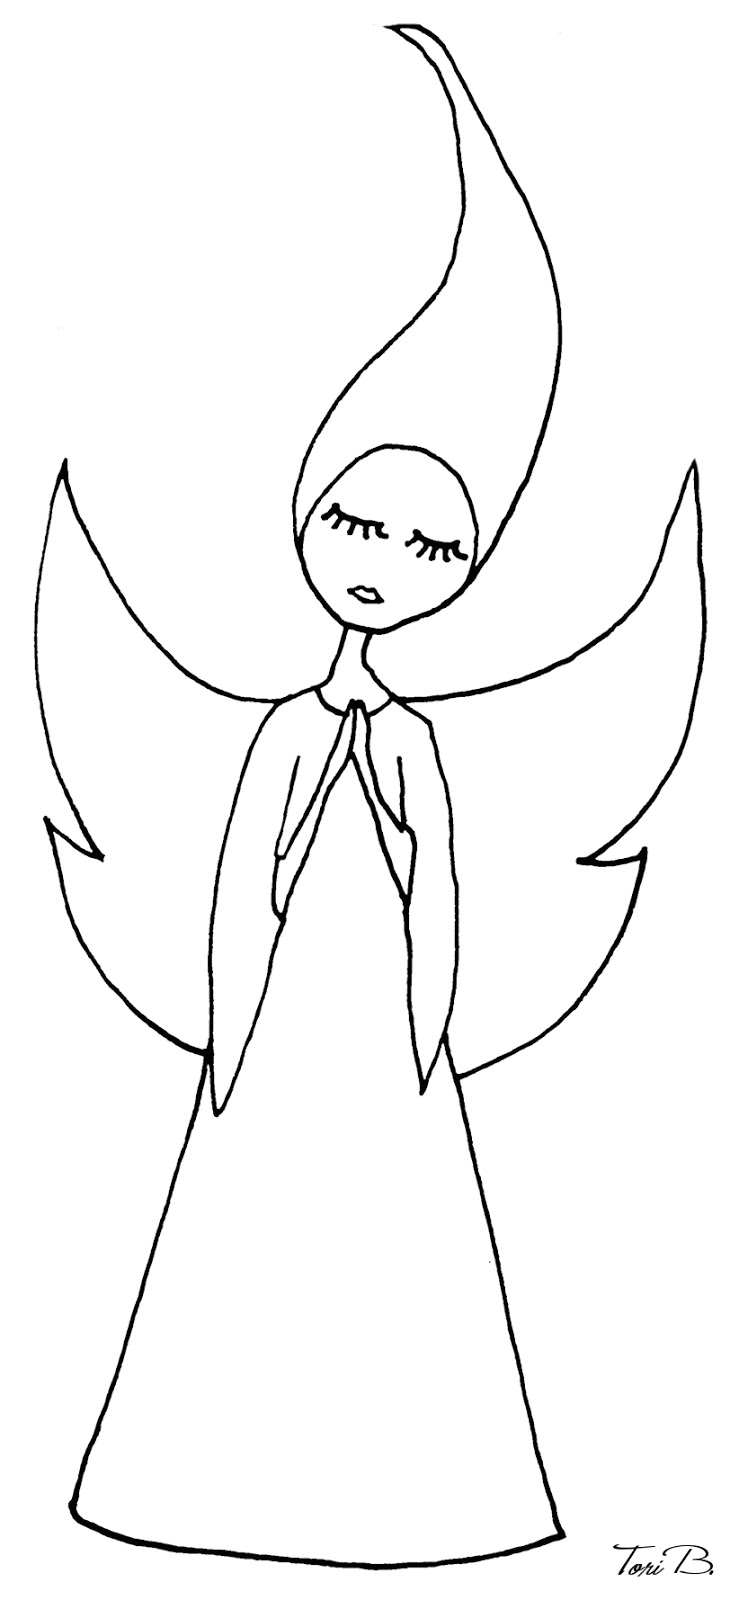 Easy Angel Drawings Step By Step I kept her simple, so that you